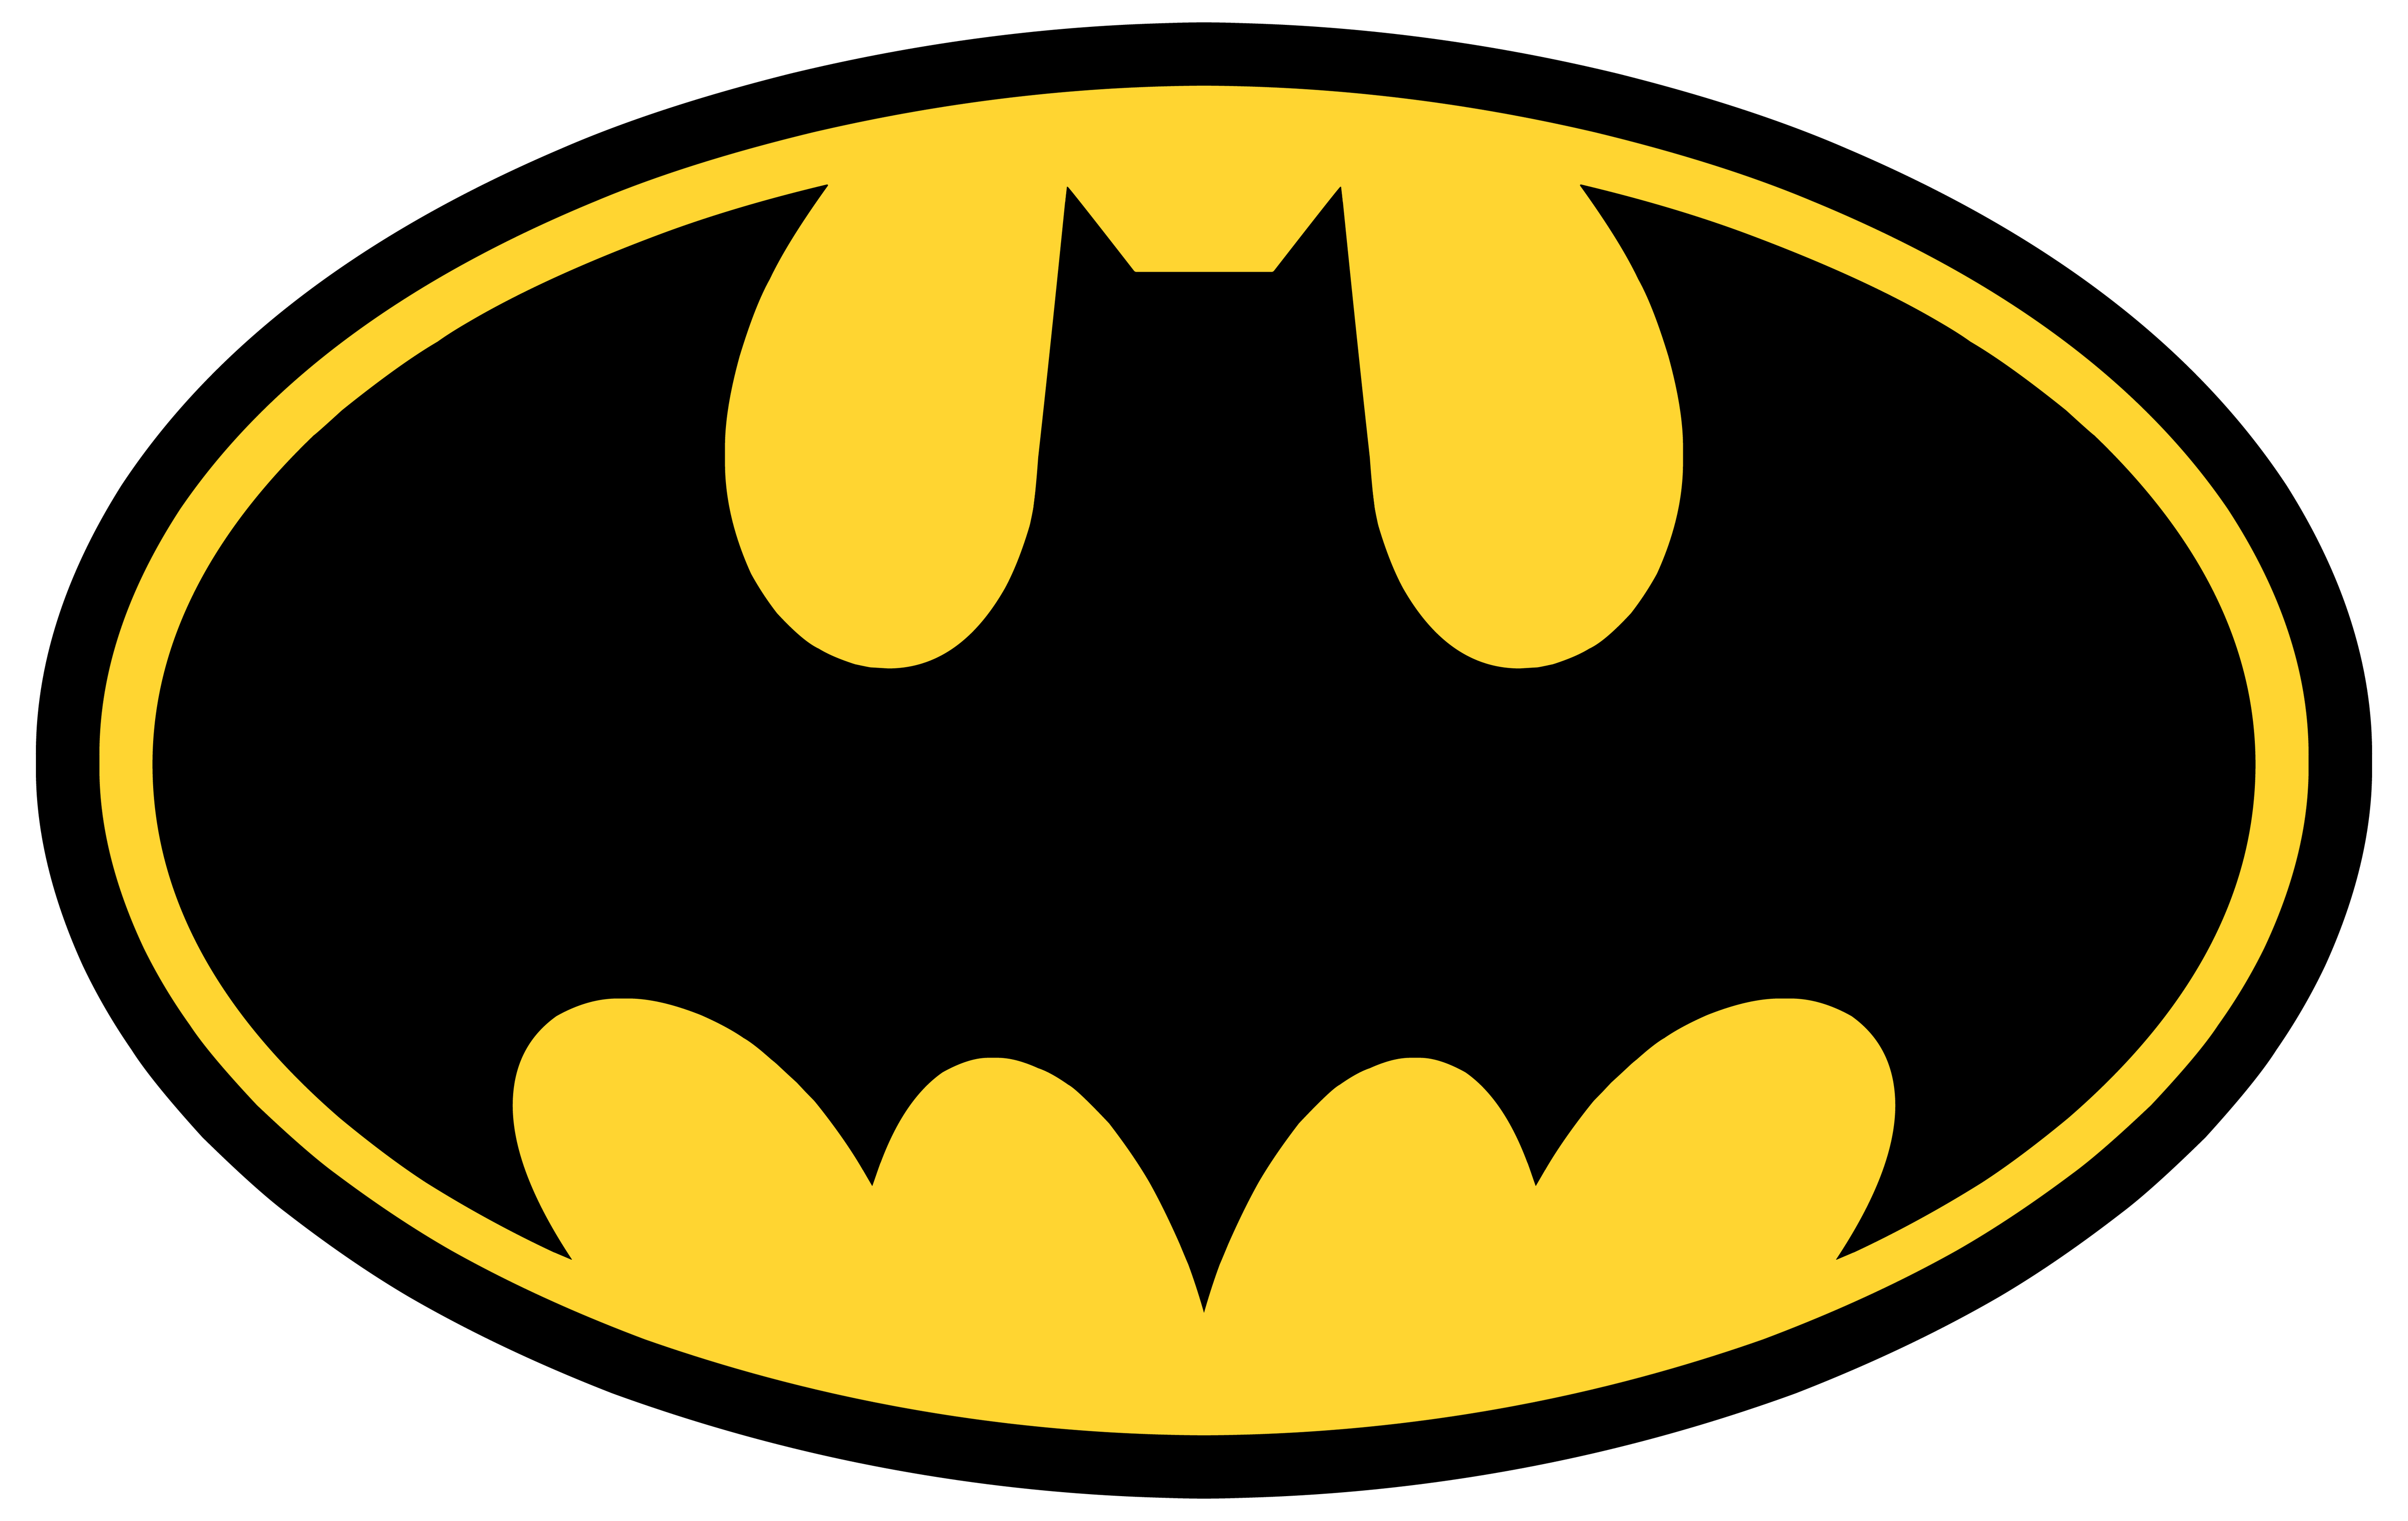 Logos For > Batman Logo Black And Yellow - ClipArt Best - ClipArt Best